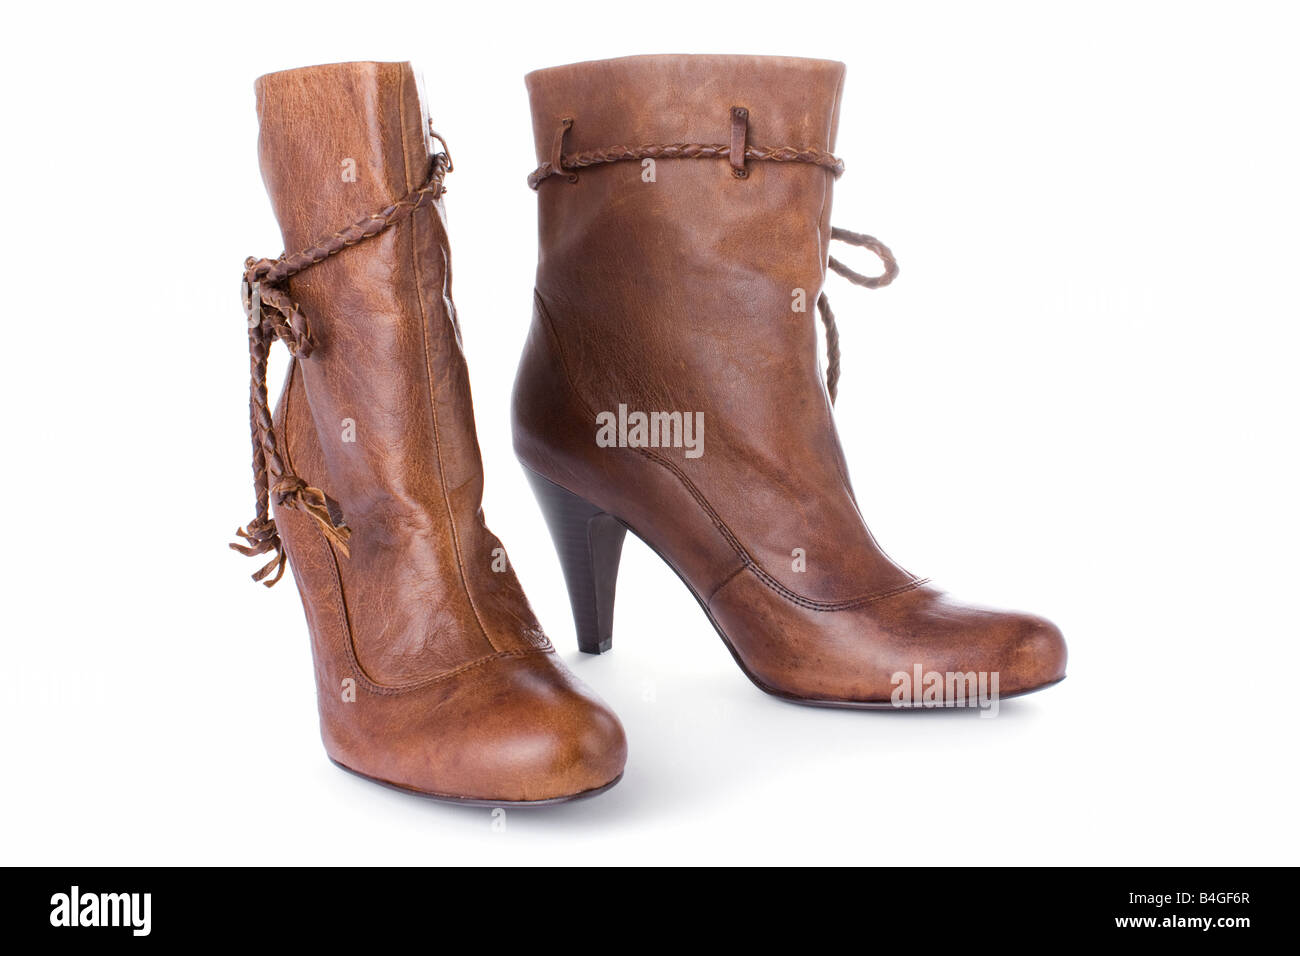 Hig heels half boots isolated on white background - Stock Image